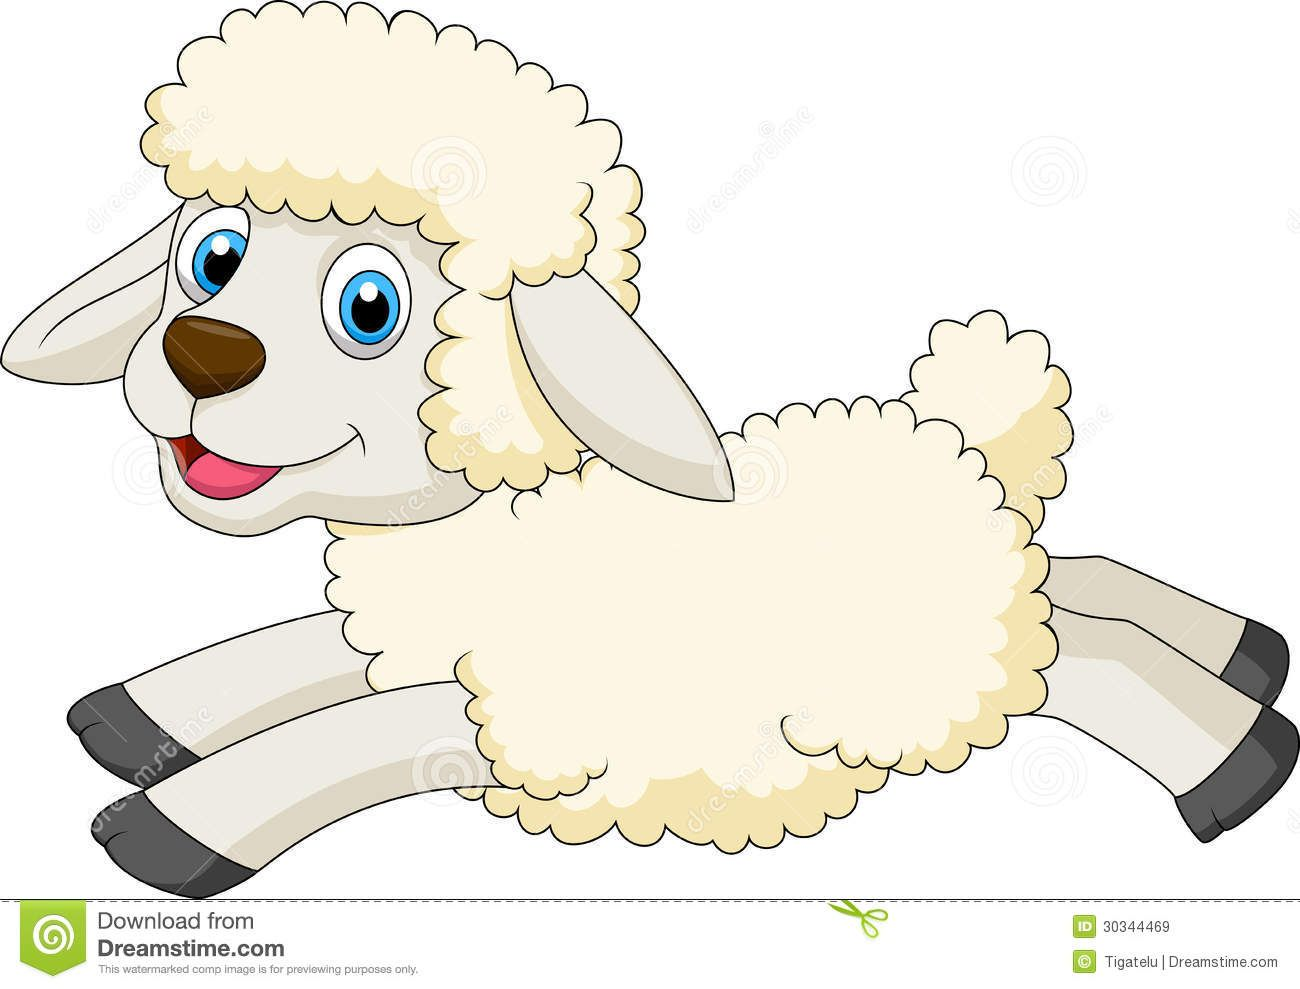 Cute Sheep Cartoon Jumping Download From Over 57 Million High Quality Stock Photos Images Vectors Sign Up For Fre Sheep Cartoon Cute Sheep Cartoon Giraffe